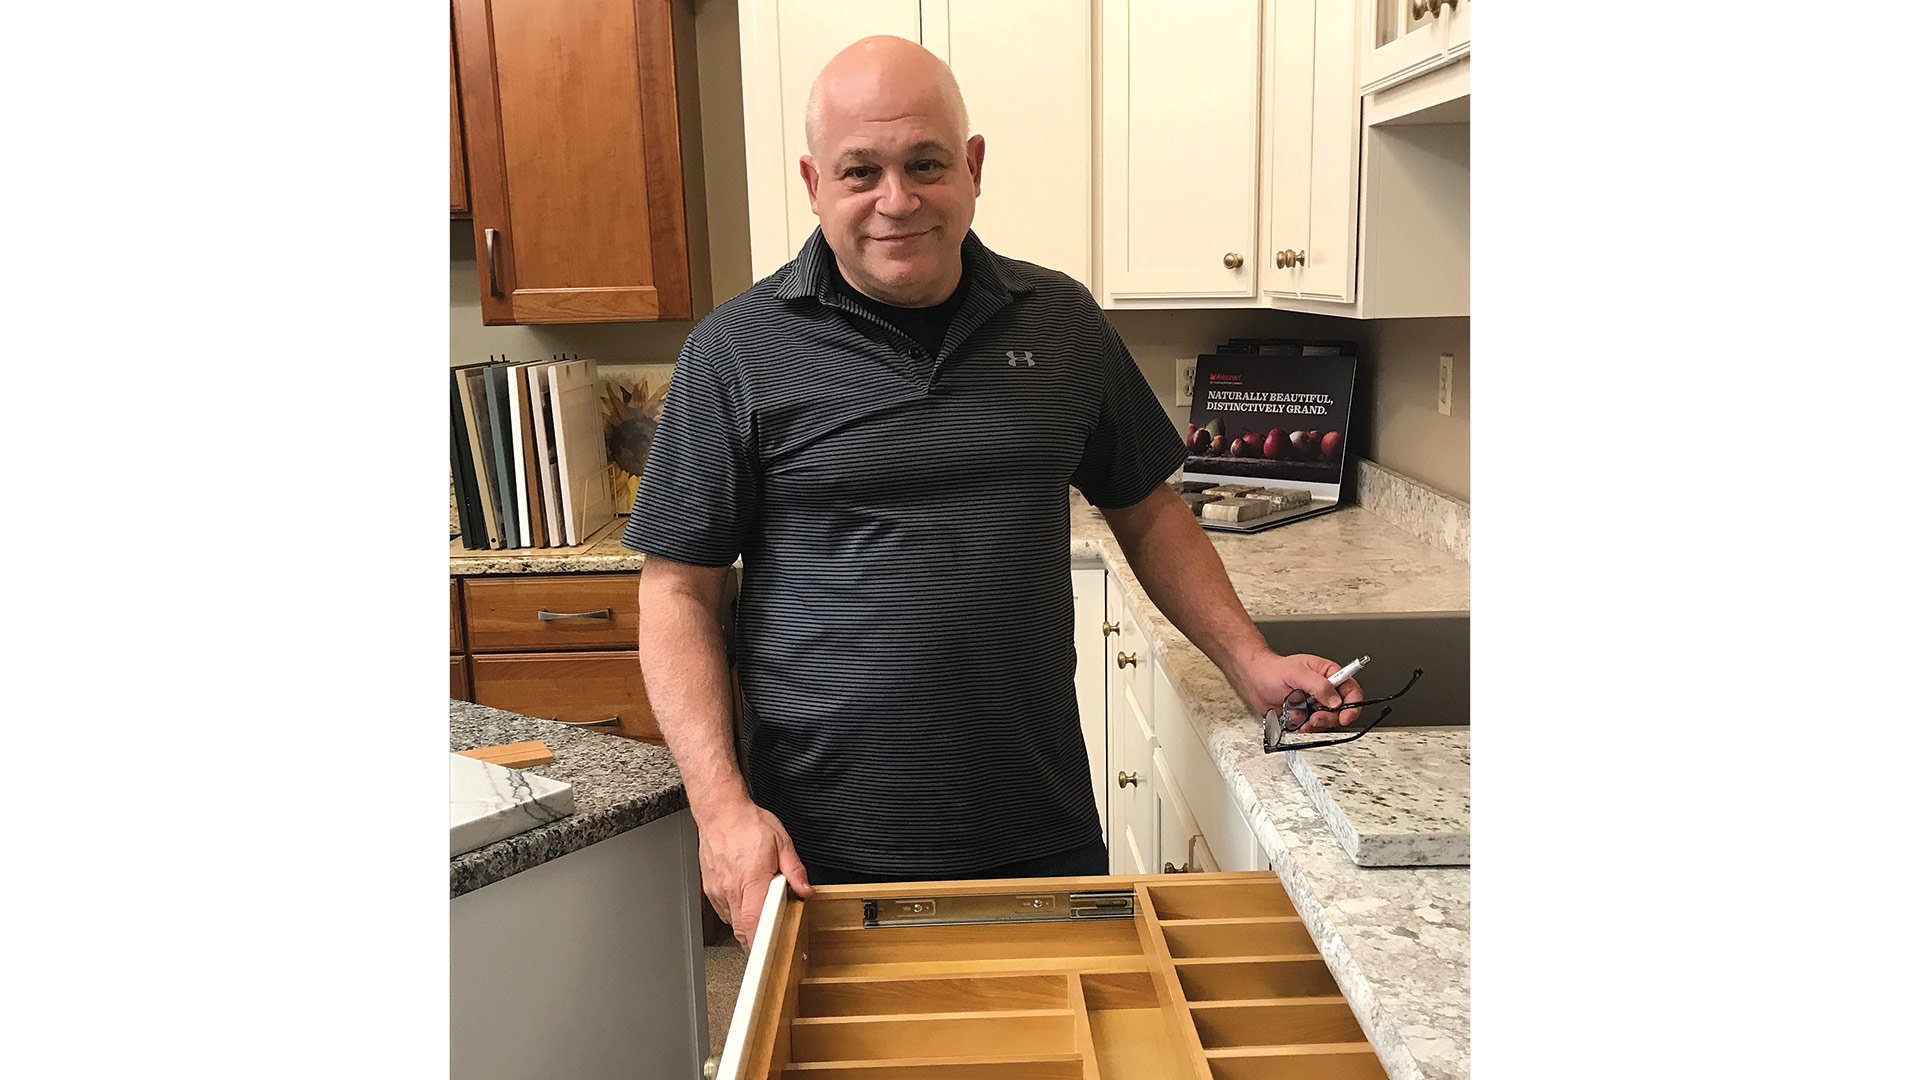 Dave Lloyd demonstrates a two-level silverware drawer.